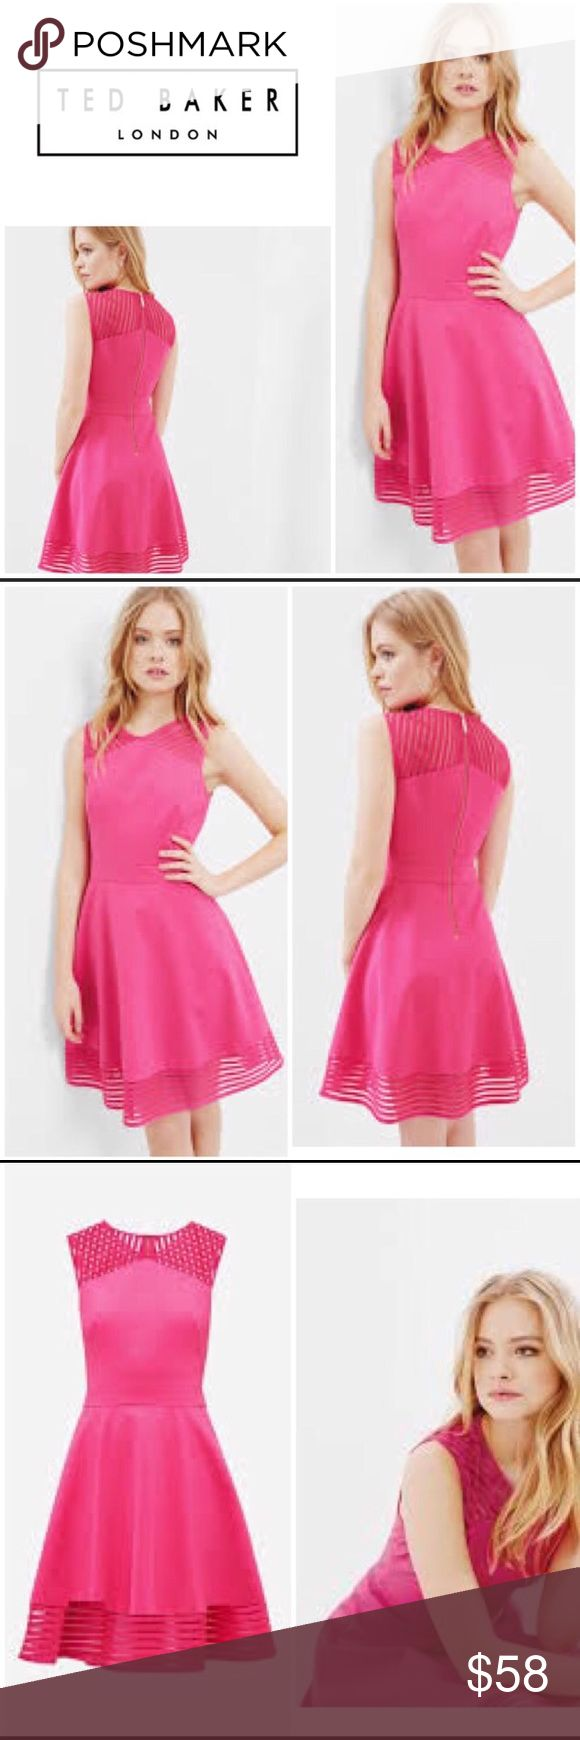 "New Ted Baker Eleese Mesh Skater Dress New with tags, Gorgeous! Ted Baker Fuchsia Mesh Skater Fit & Flare Dress.   Ted Baker Size 5 US Size 12 Bust: 41"" Waist: 34"" Hips: 44"" Stretch  Originally bought for a client from Nordstrom's outlet store Last Chance. Never worn, doesn't have Ted Baker Tags, has the Nordstrom outlet tags.  I'm currently cleaning out my client closets. Open to offers on bundles. 15% off bundles of 3+!   Free gift with every purchase! ! <3 Ted Baker Dresses"